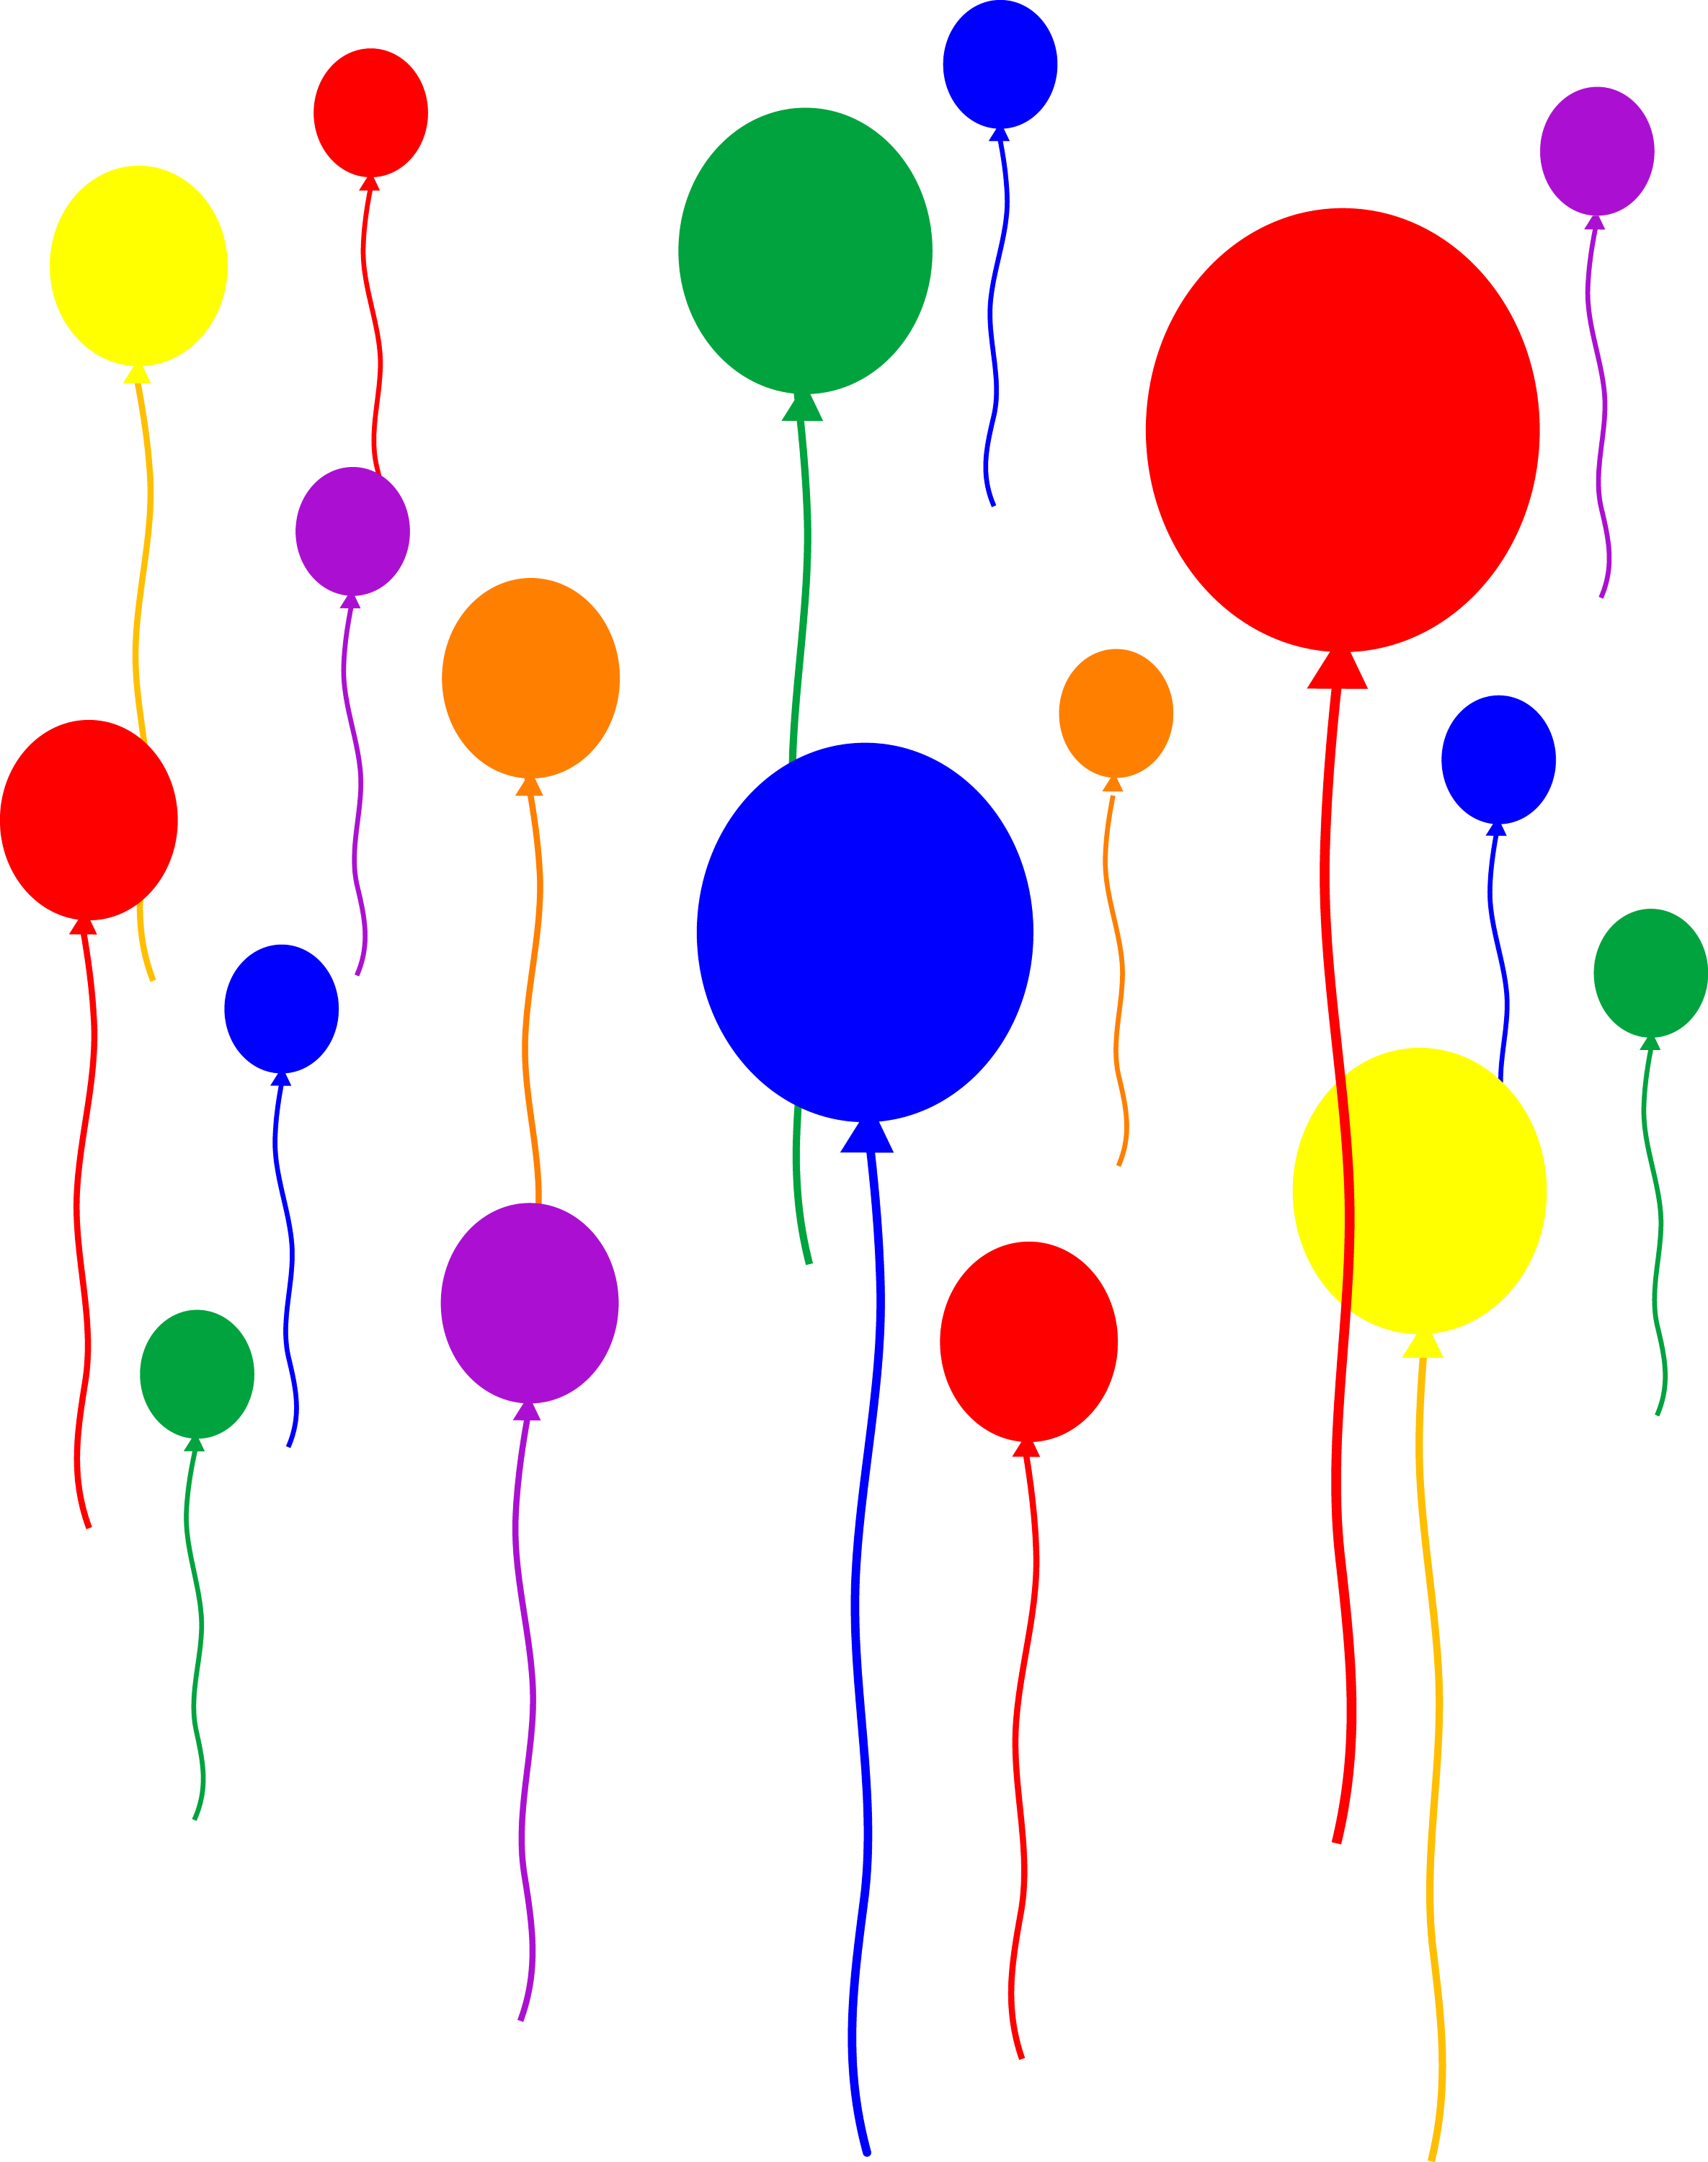 party balloons on transparent background free clip art rh sweetclipart com background clipart of a roadmap background clipart images country setting